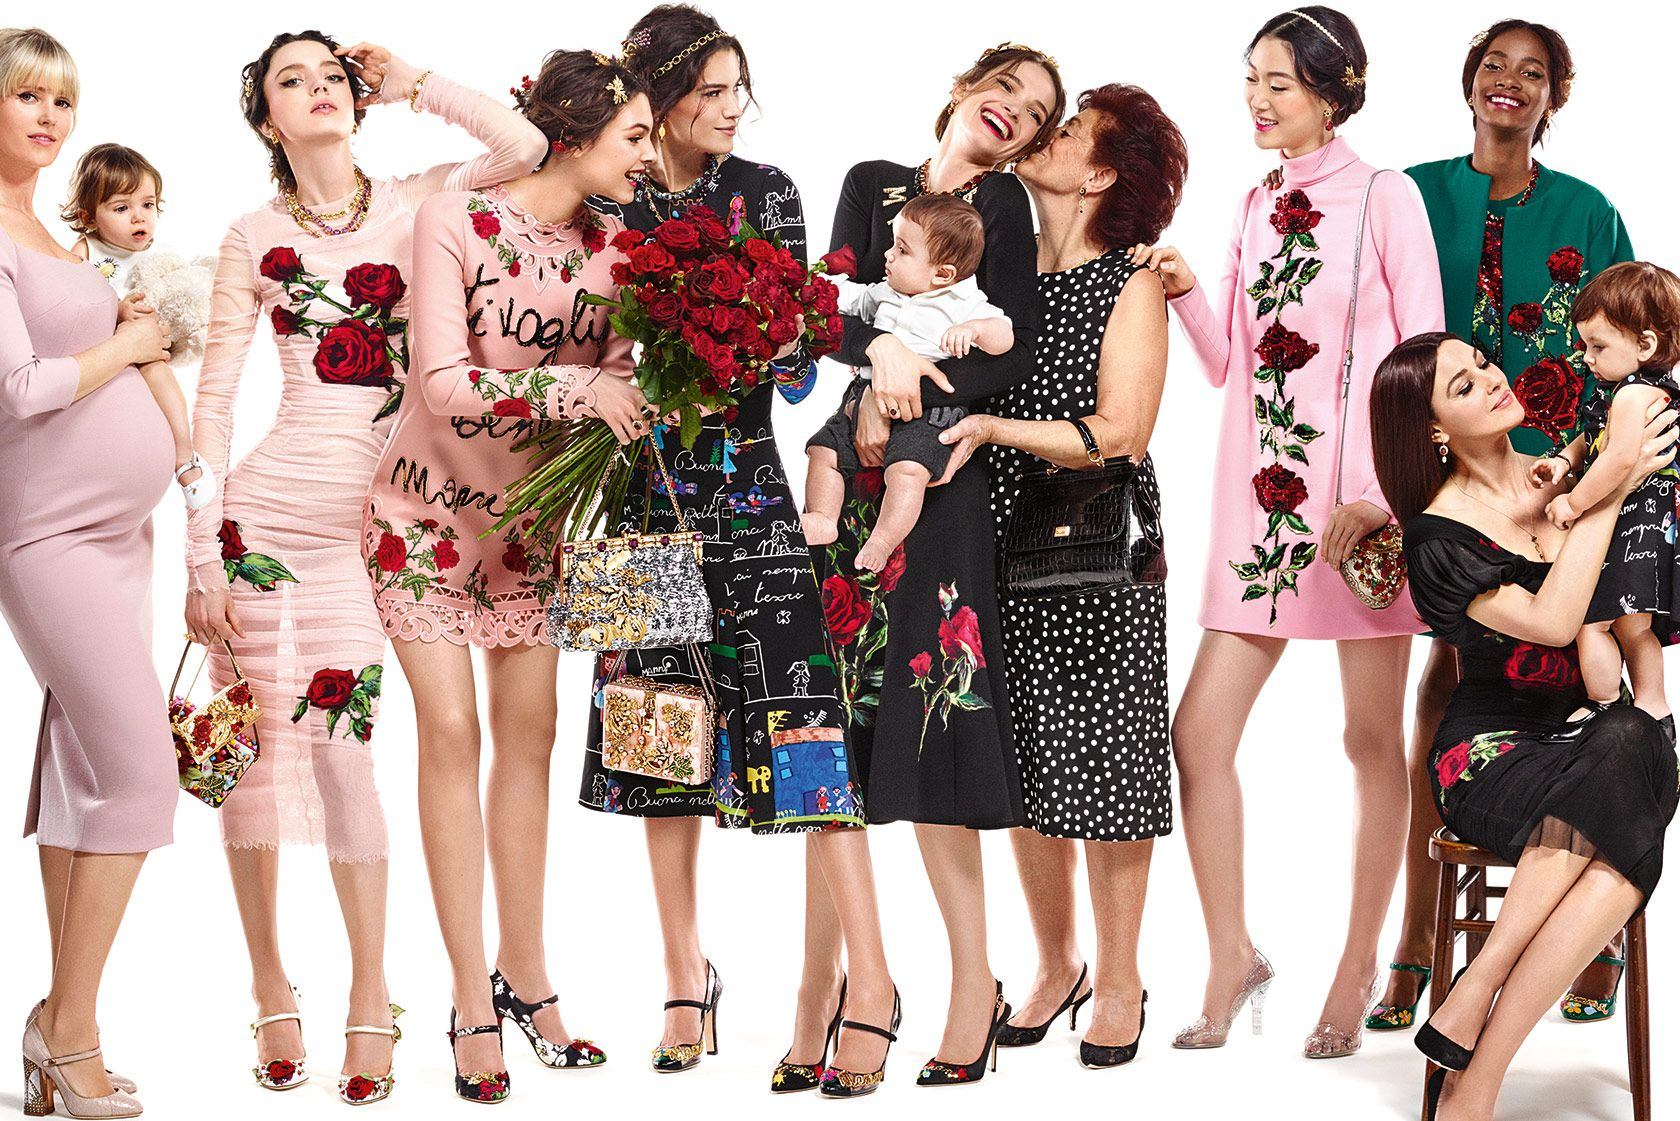 Image result for d&g fall winter 2015 | Campaign fashion, Fashion advertising, Fashion